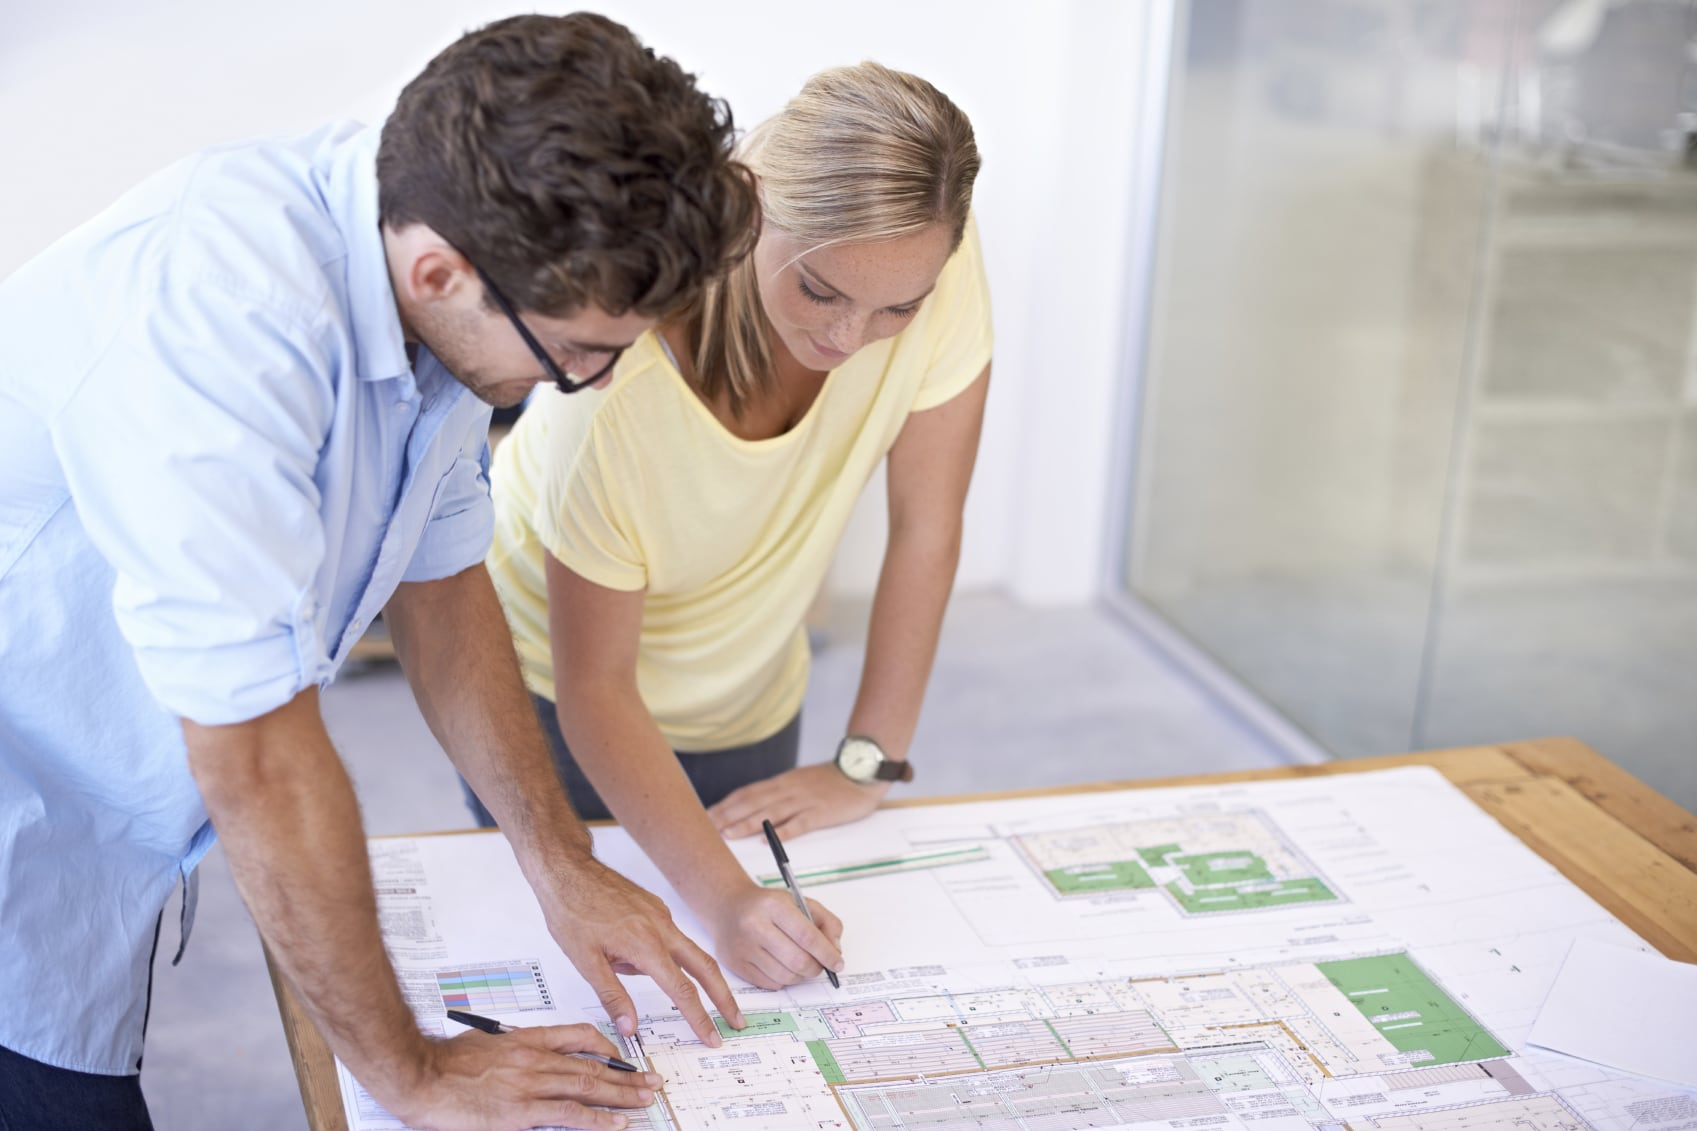 A group of architects discussing elements of a building plan